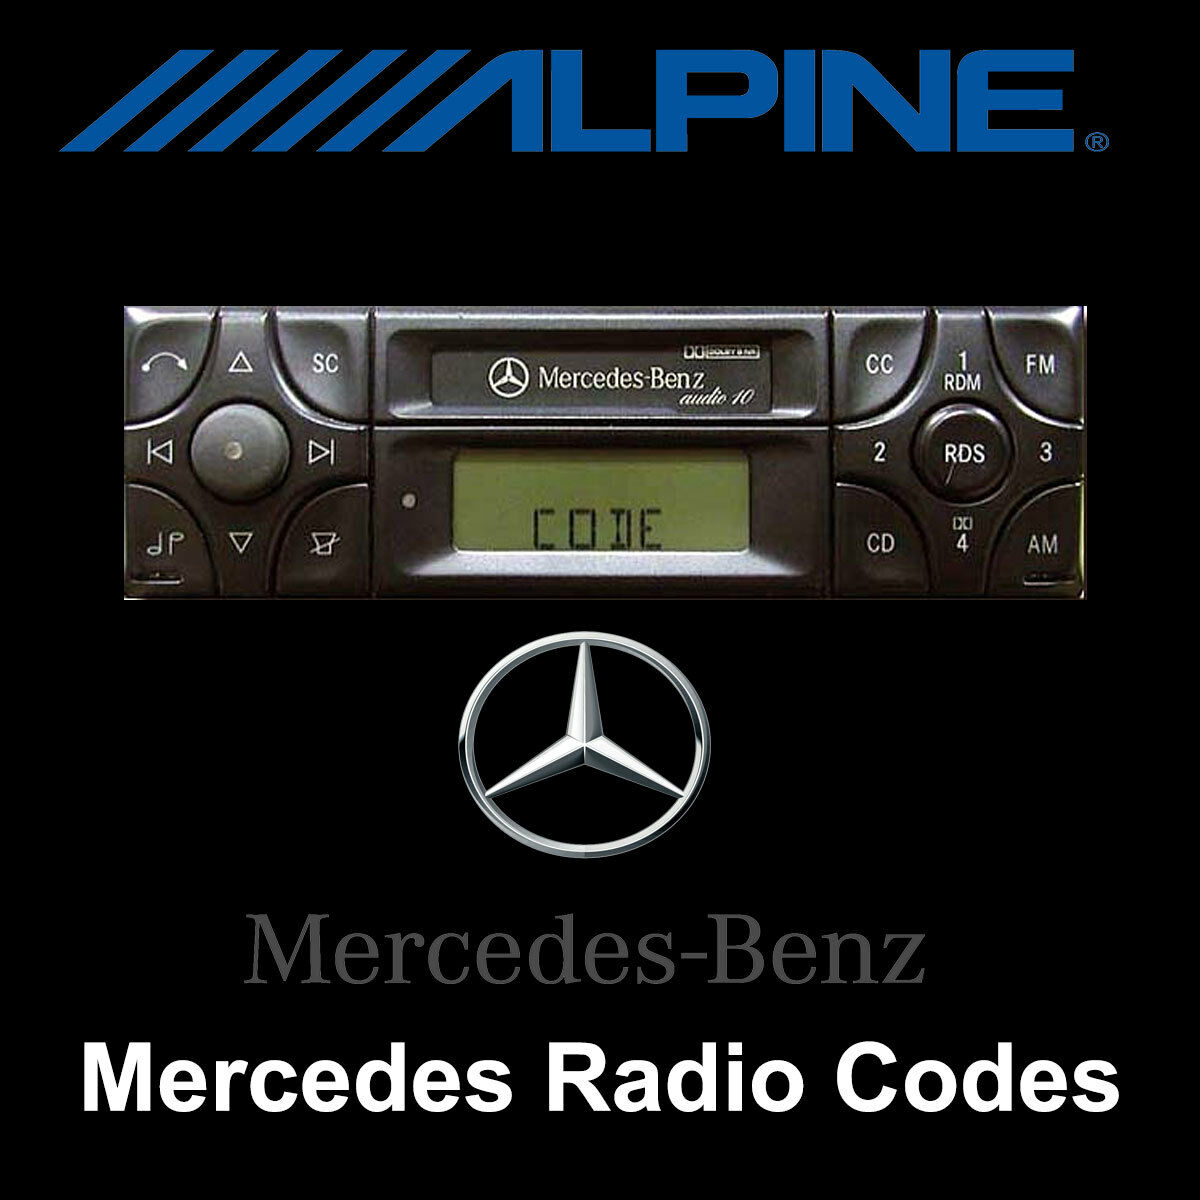 mercedes radio code alpine mf2910 mf2199 audio 10 car